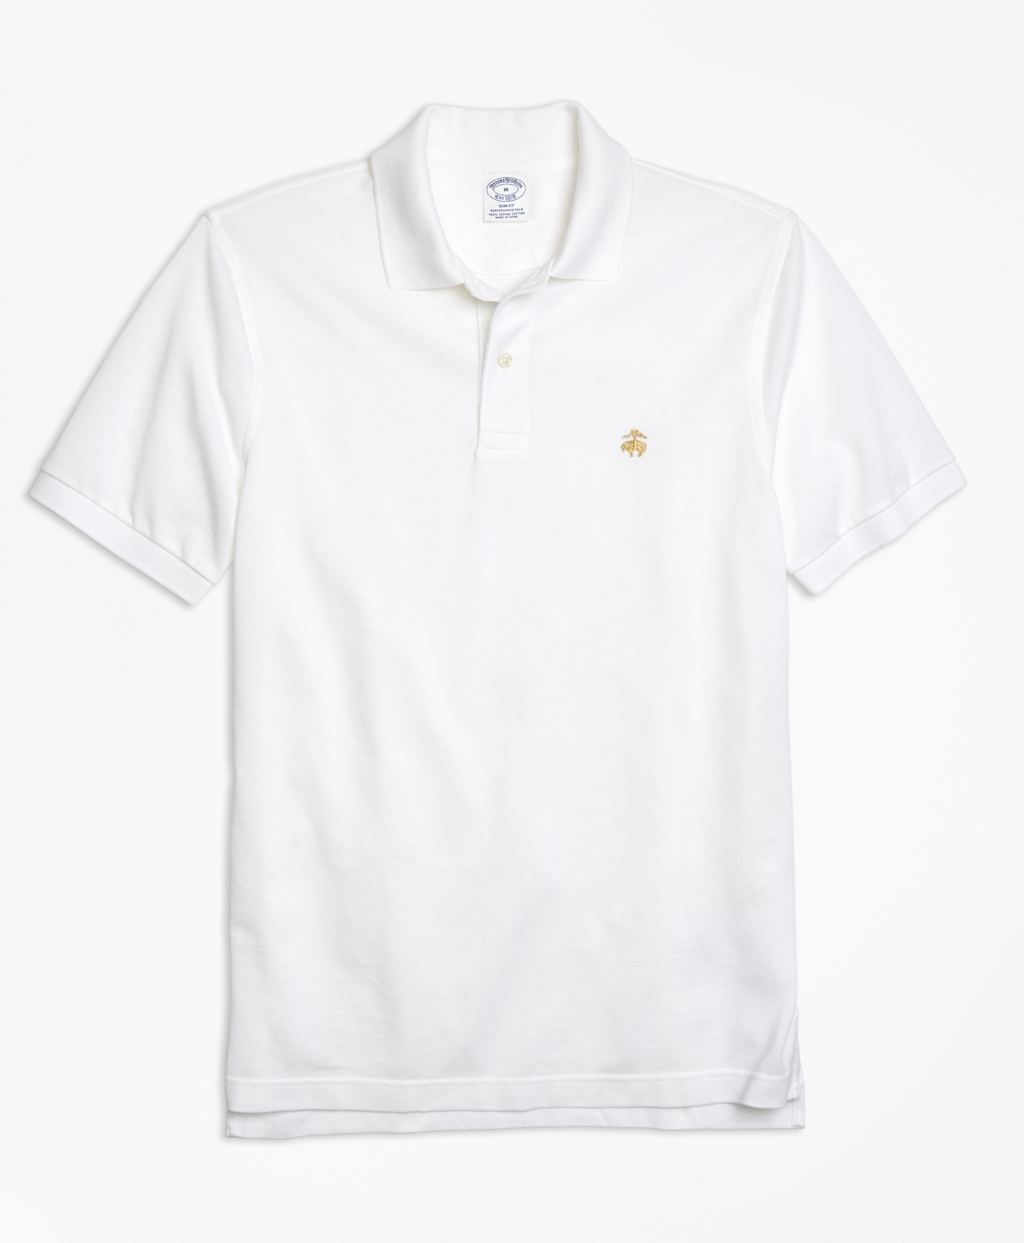 Brooks Brothers polo shirt - £85 - The very definition of